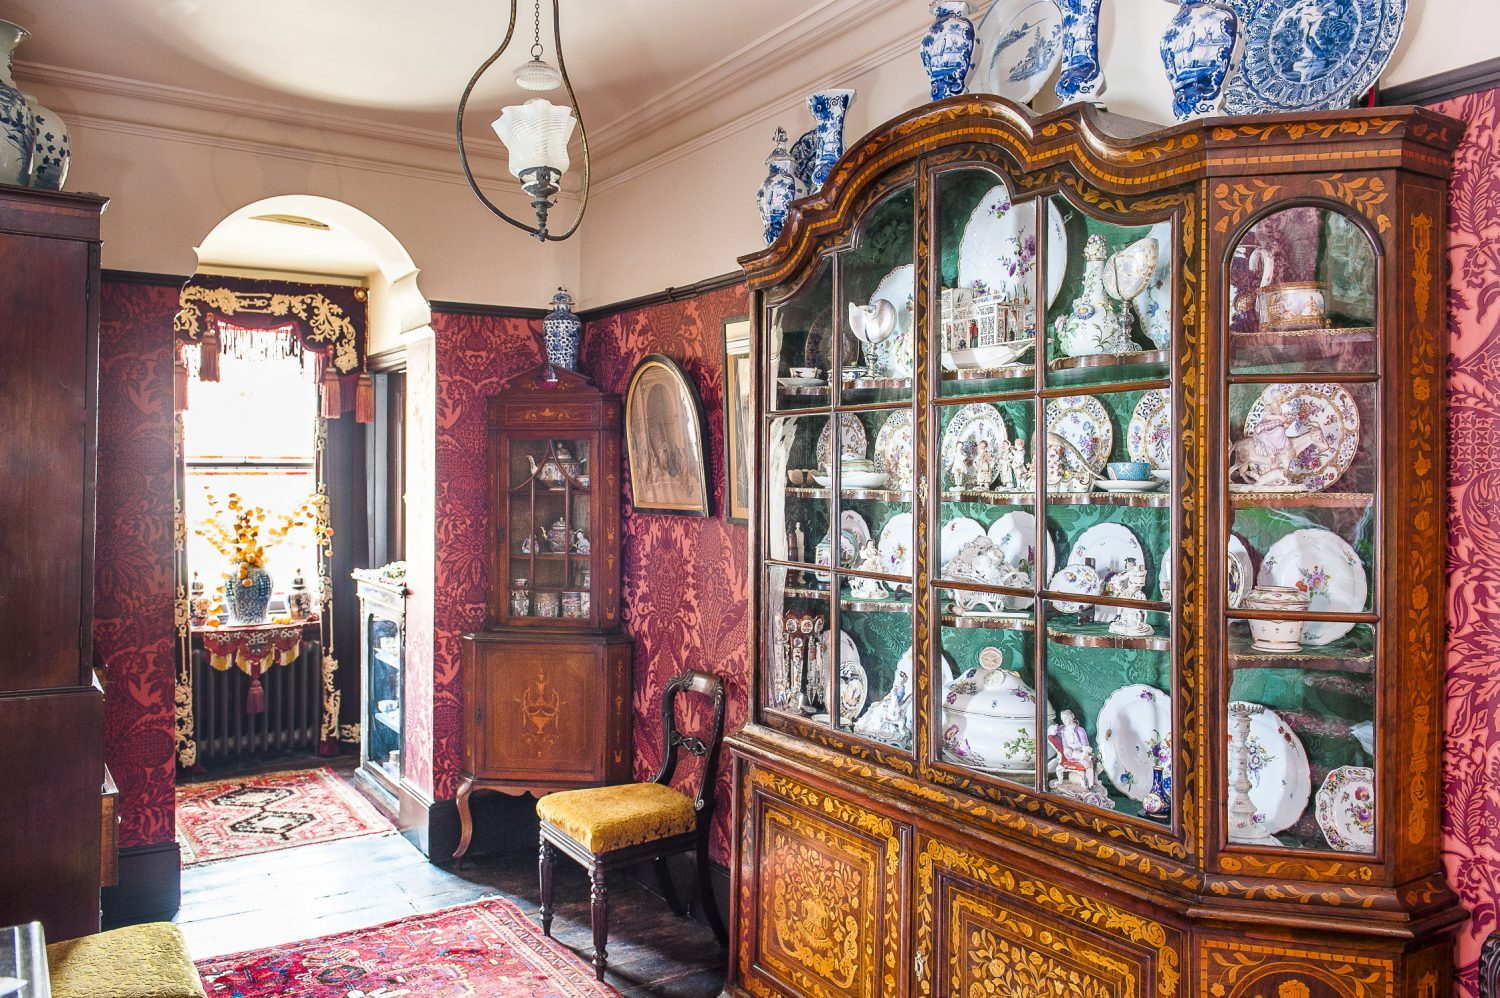 A collection of chinaware is displayed in an ornate cabinet